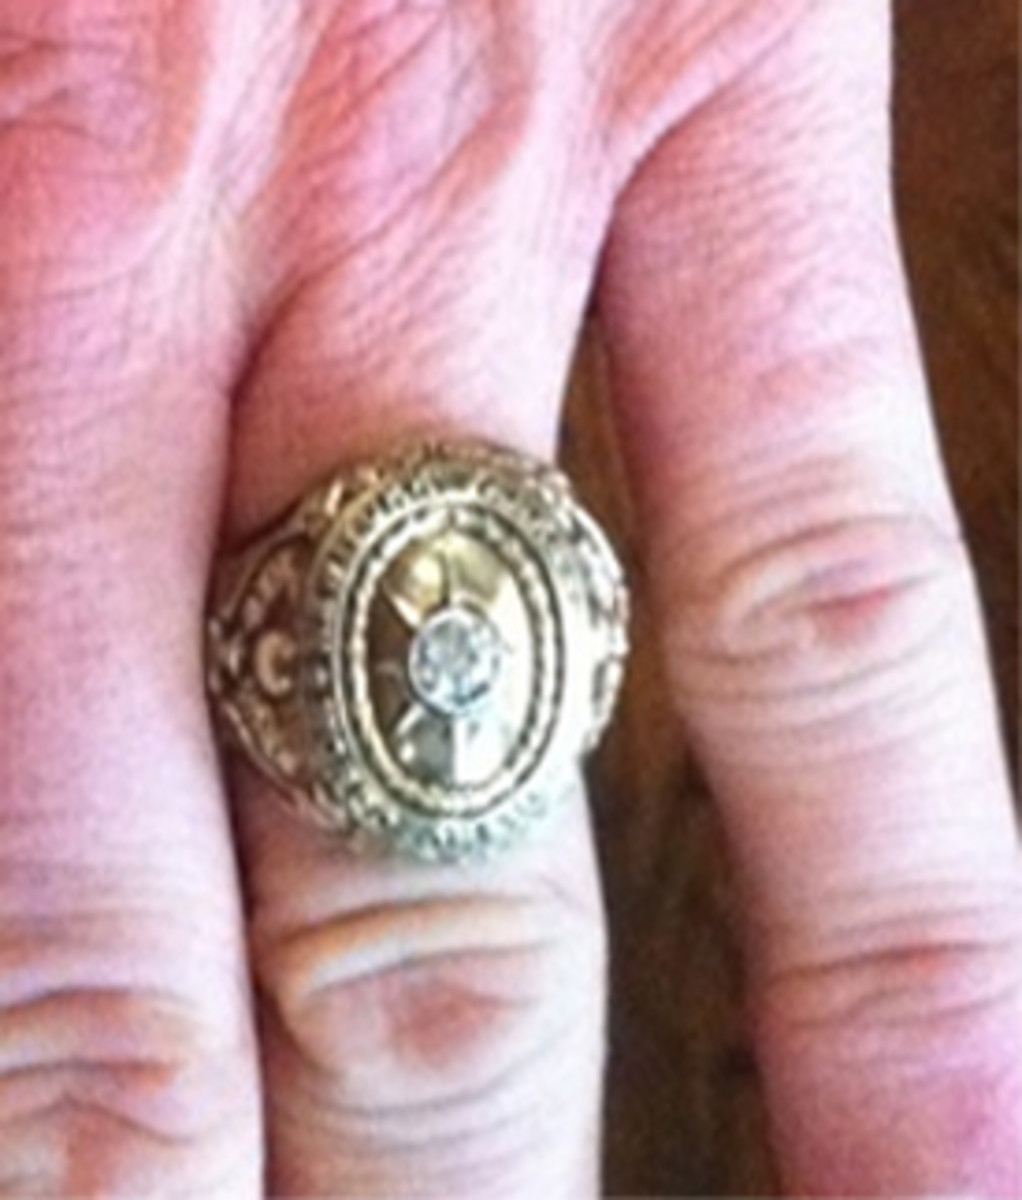 This photo was tweeted by Charlie Sheen. That's Sheen's fingers and his Babe Ruth 1927 Yankee ring.